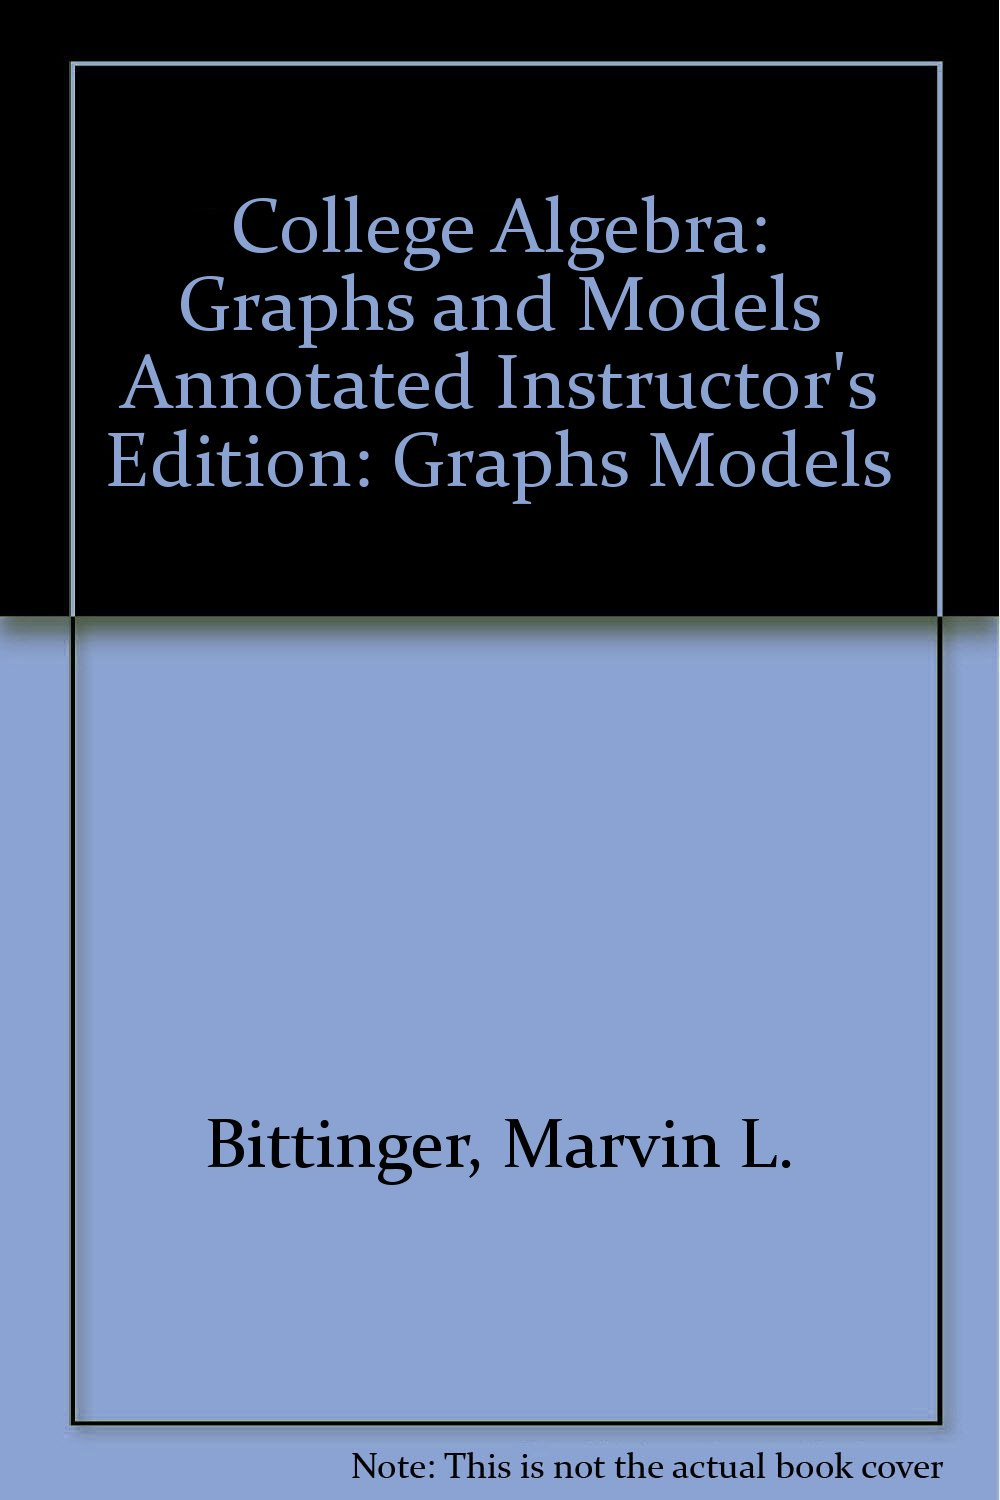 College Algebra: Graphs and Models Annotated Instructor's Edition:  Bittinger: 9780321286277: Amazon.com: Books